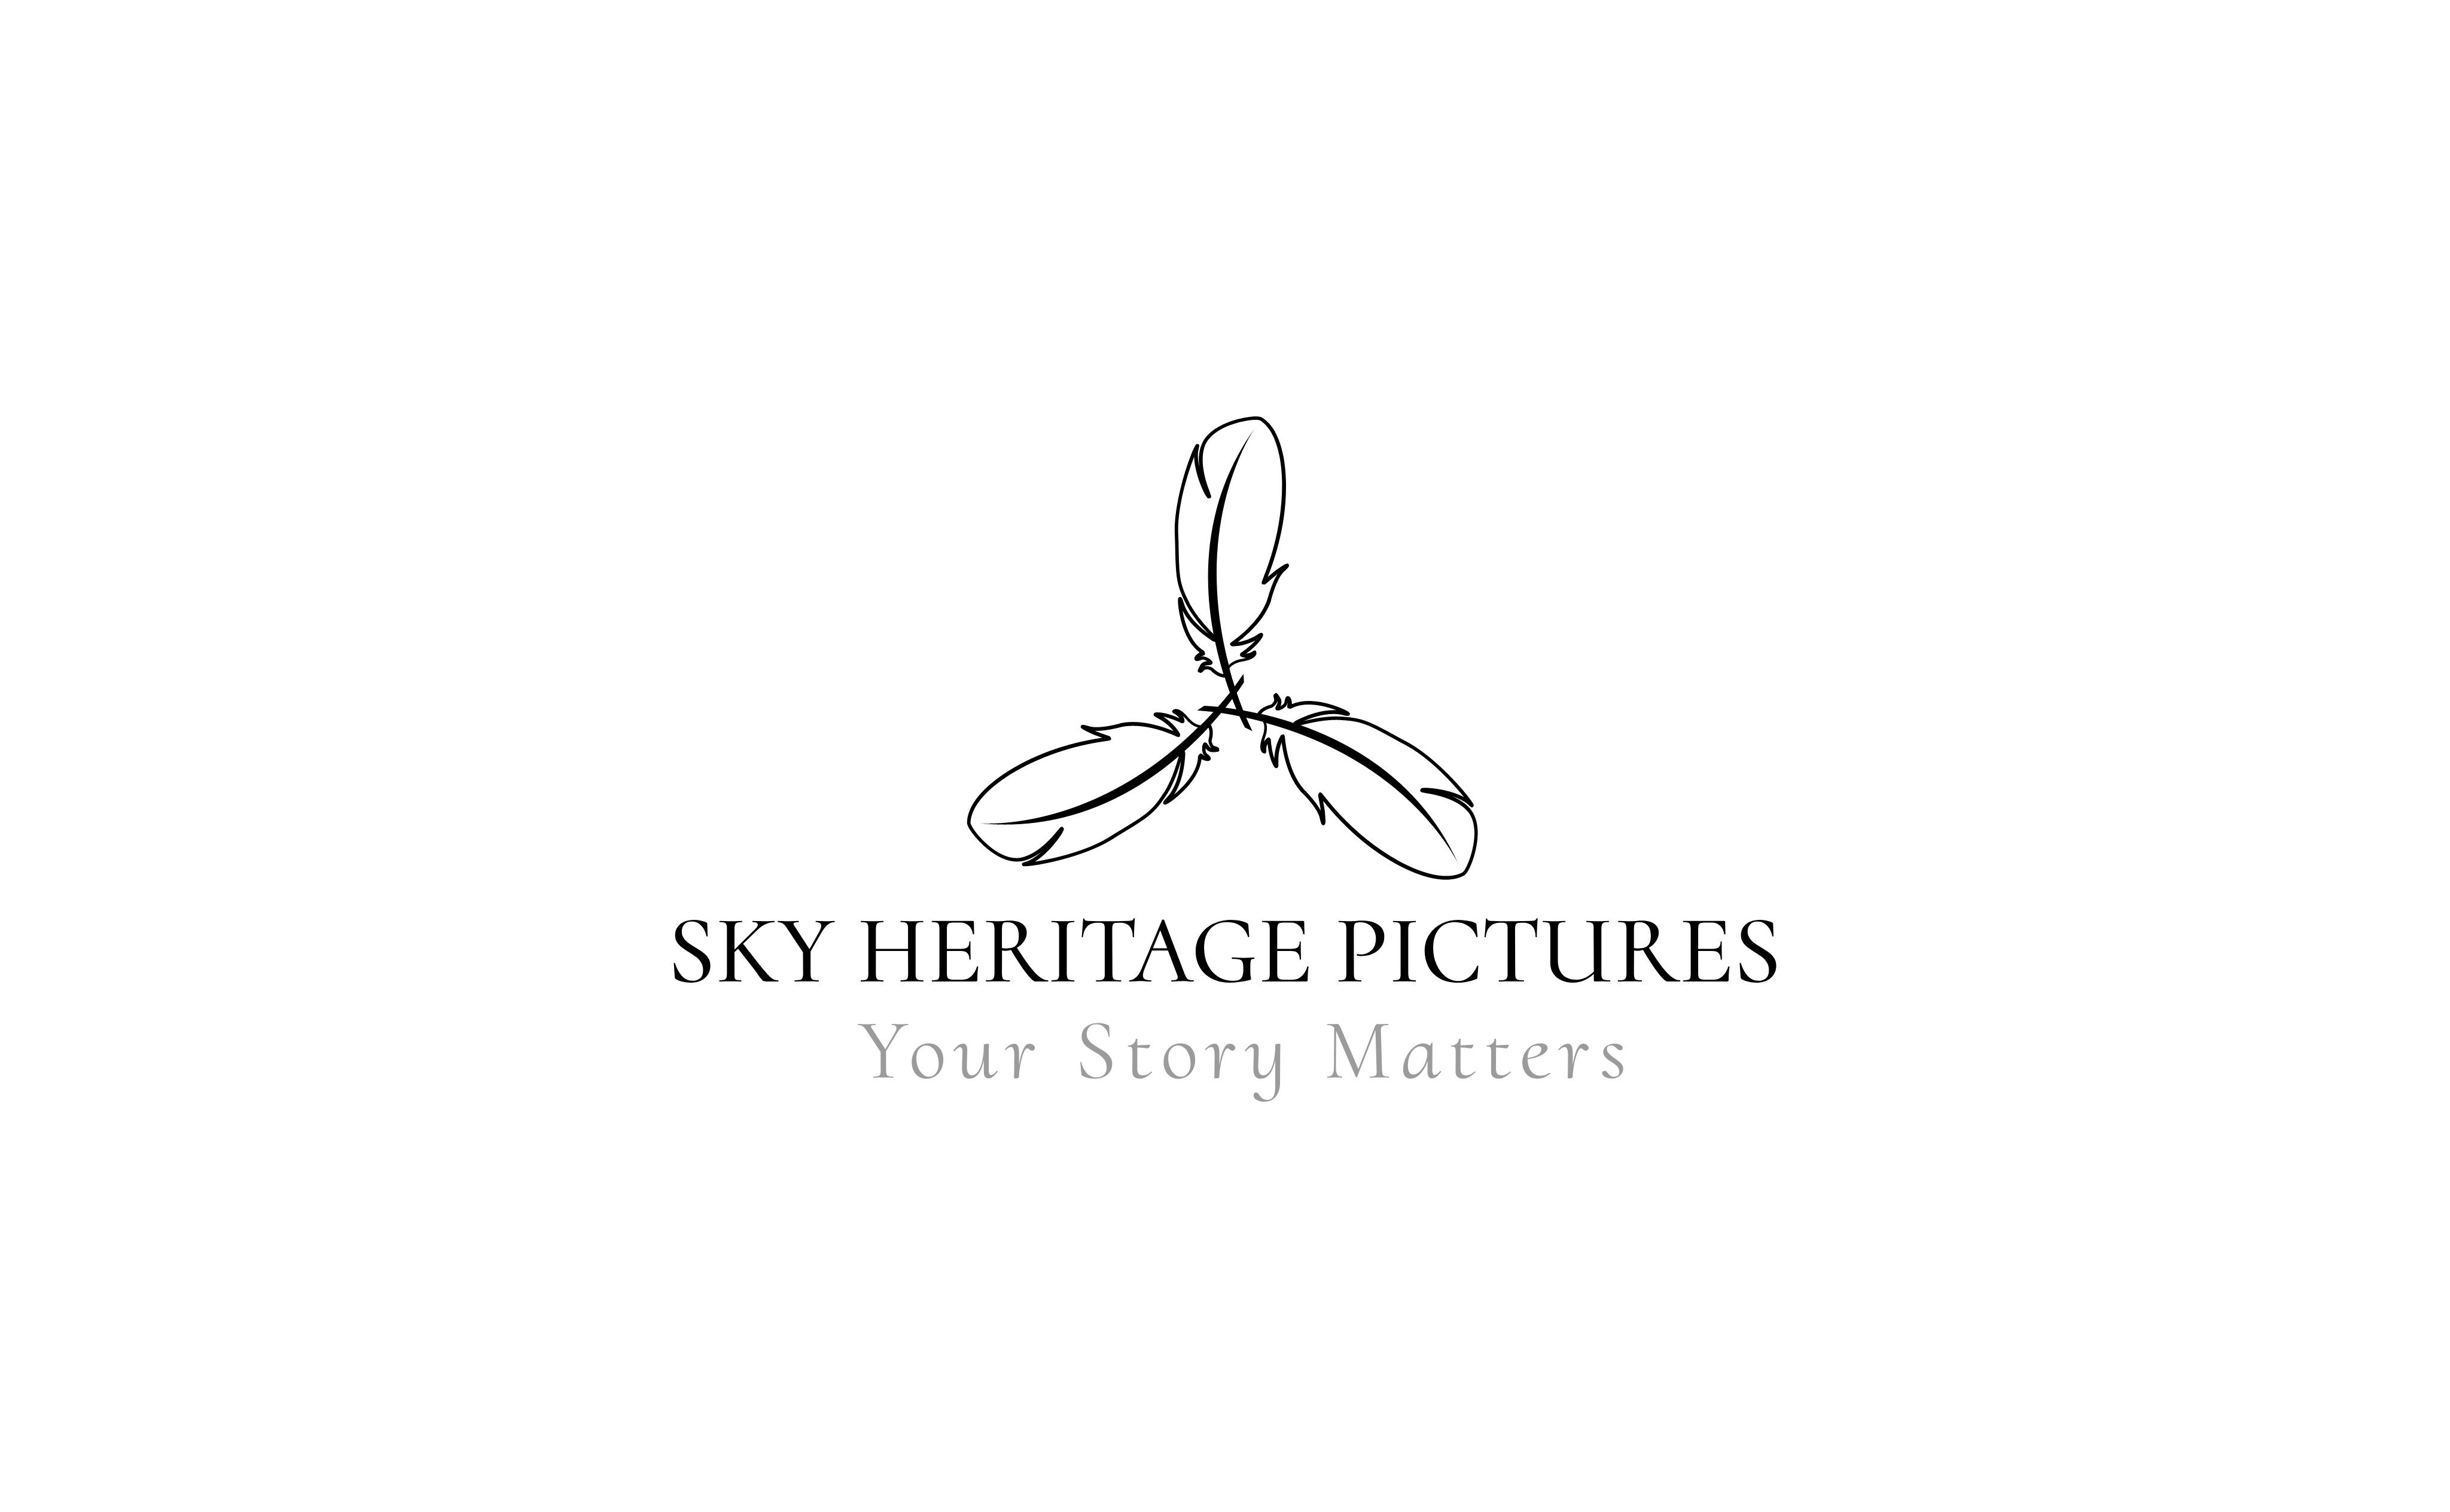 Tourism in the times of COVID and SKY HERITAGE PICTURES as response.